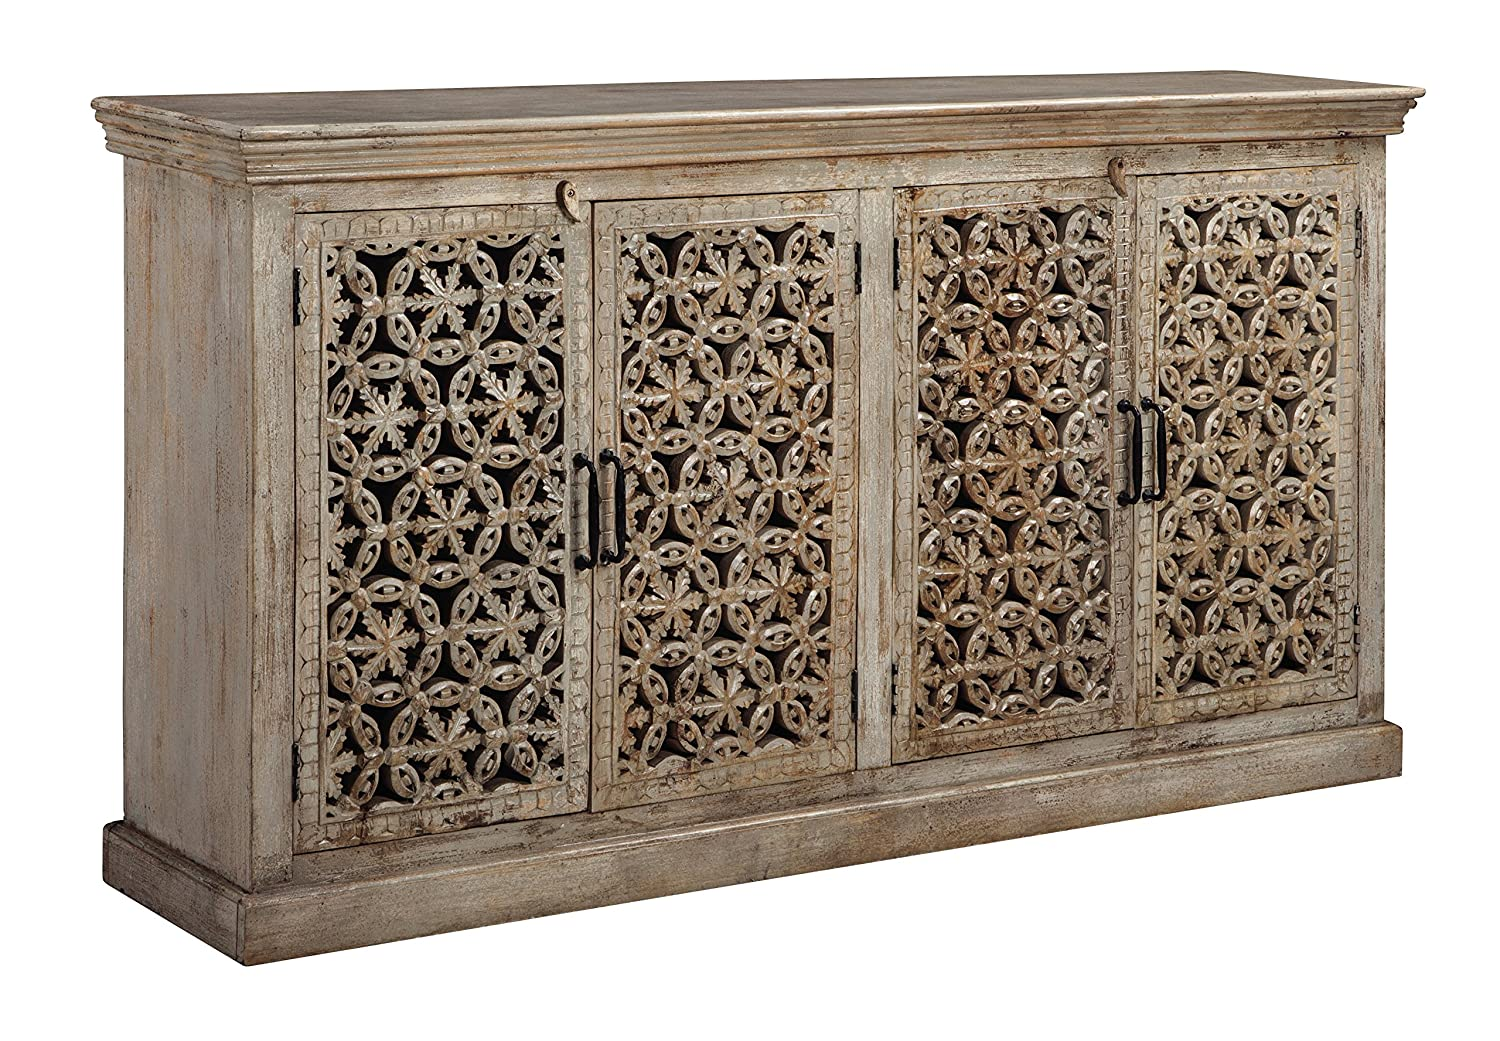 Amazon com ashley furniture signature design fossil ridge 4 door accent cabinet contemporary hand carved medallion pattern amber kitchen dining